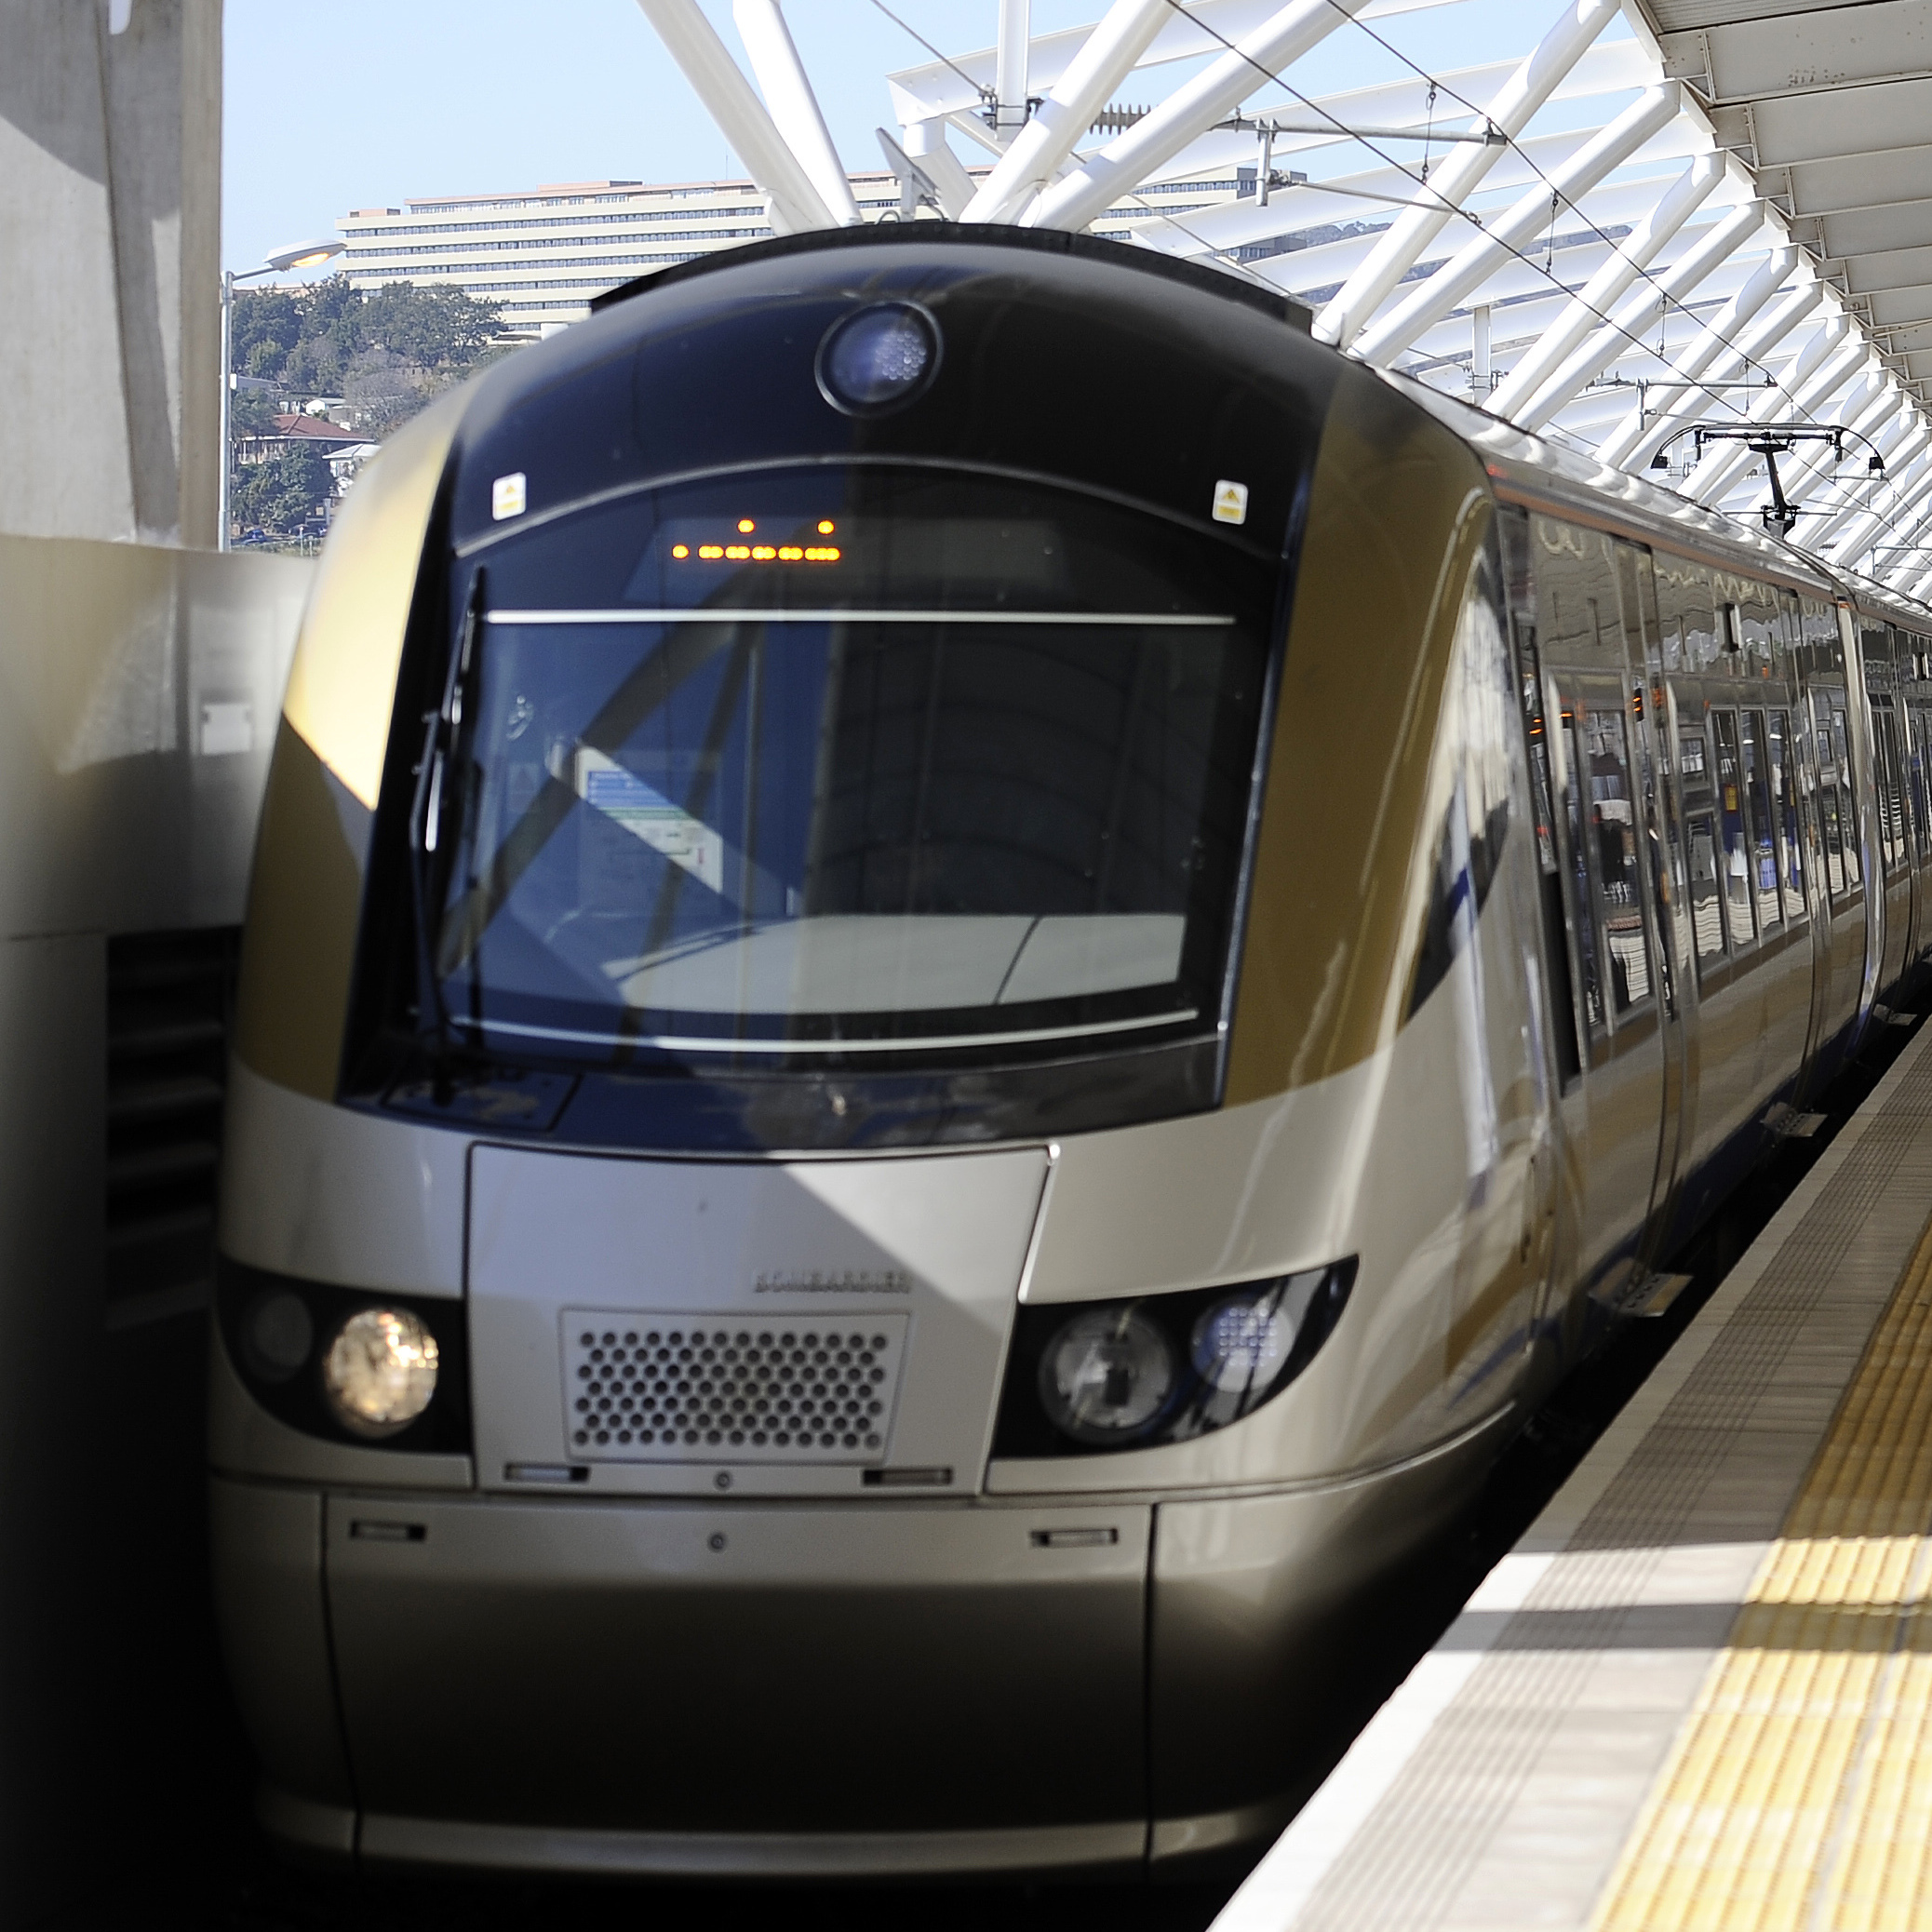 Passengers wait to get on the Gautrain, Africa's first high-speed rail line. The Gautrain began service in 2010, and the passengers shown here in August 2011 boarded on the first day the line was extended from Johannesburg to the capital Pretoria.